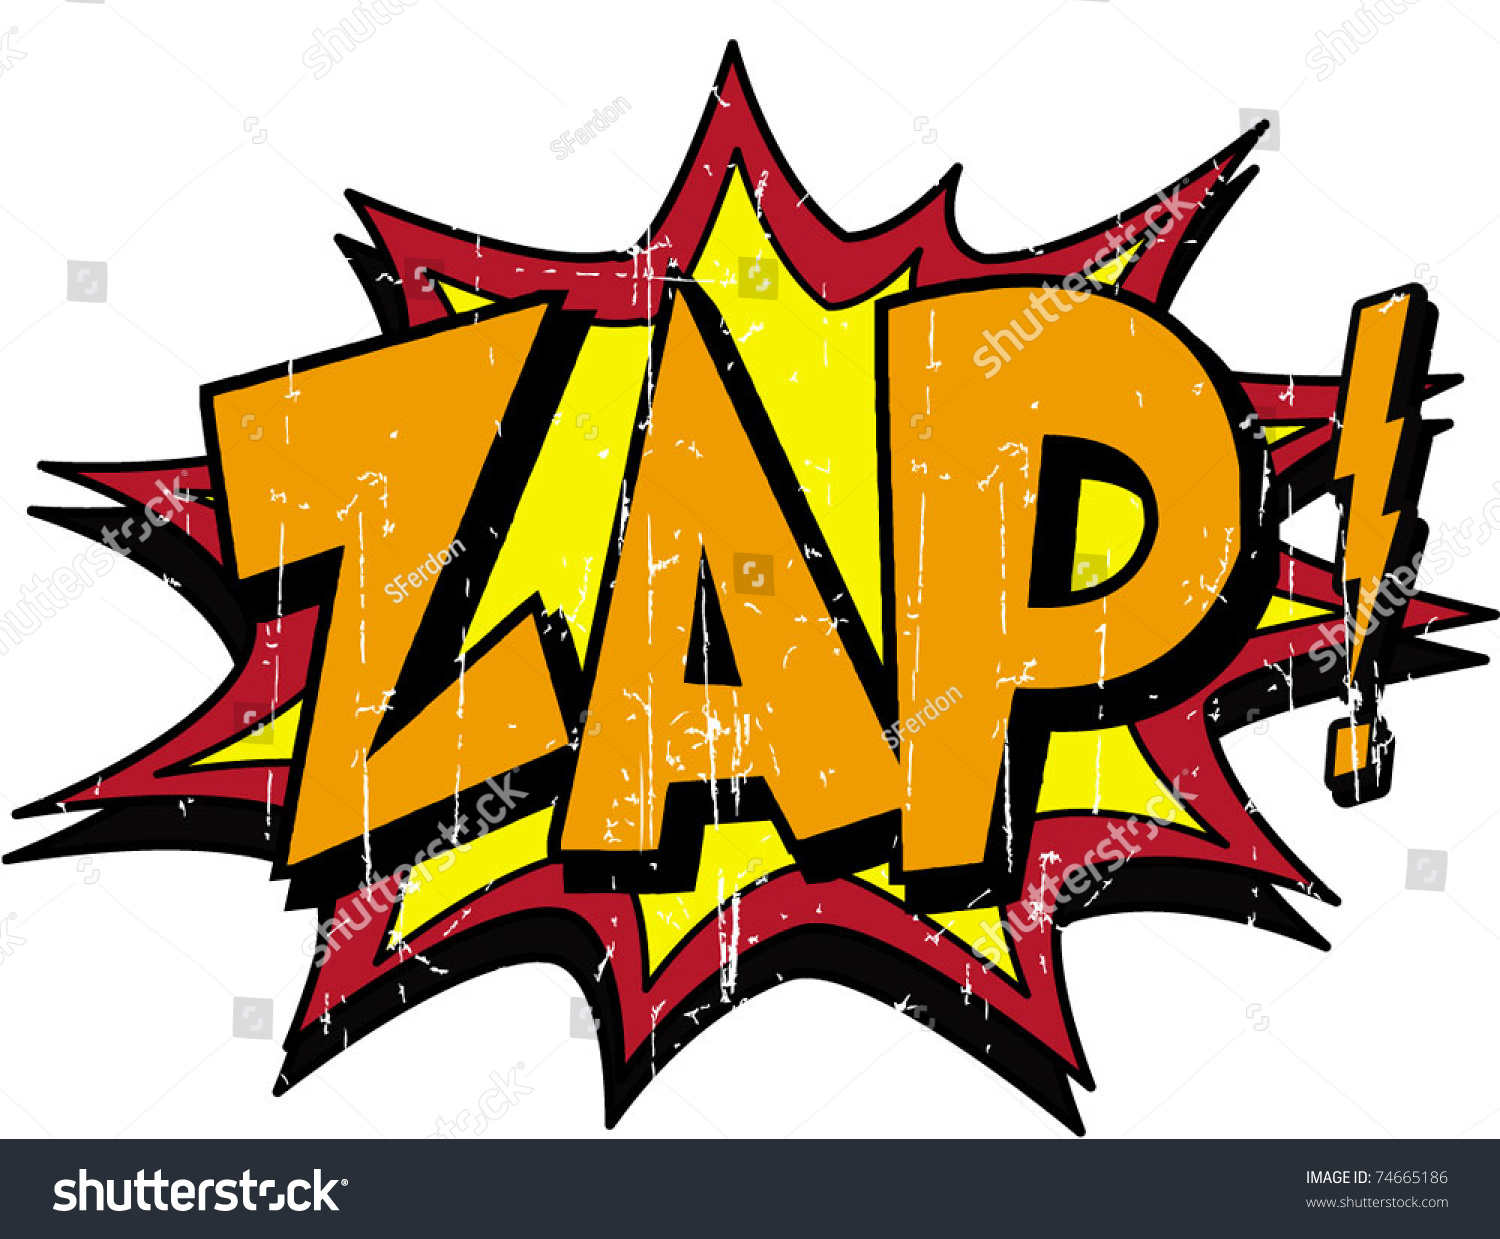 Zap Stock Vector Illustration 74665186 : Shutterstock